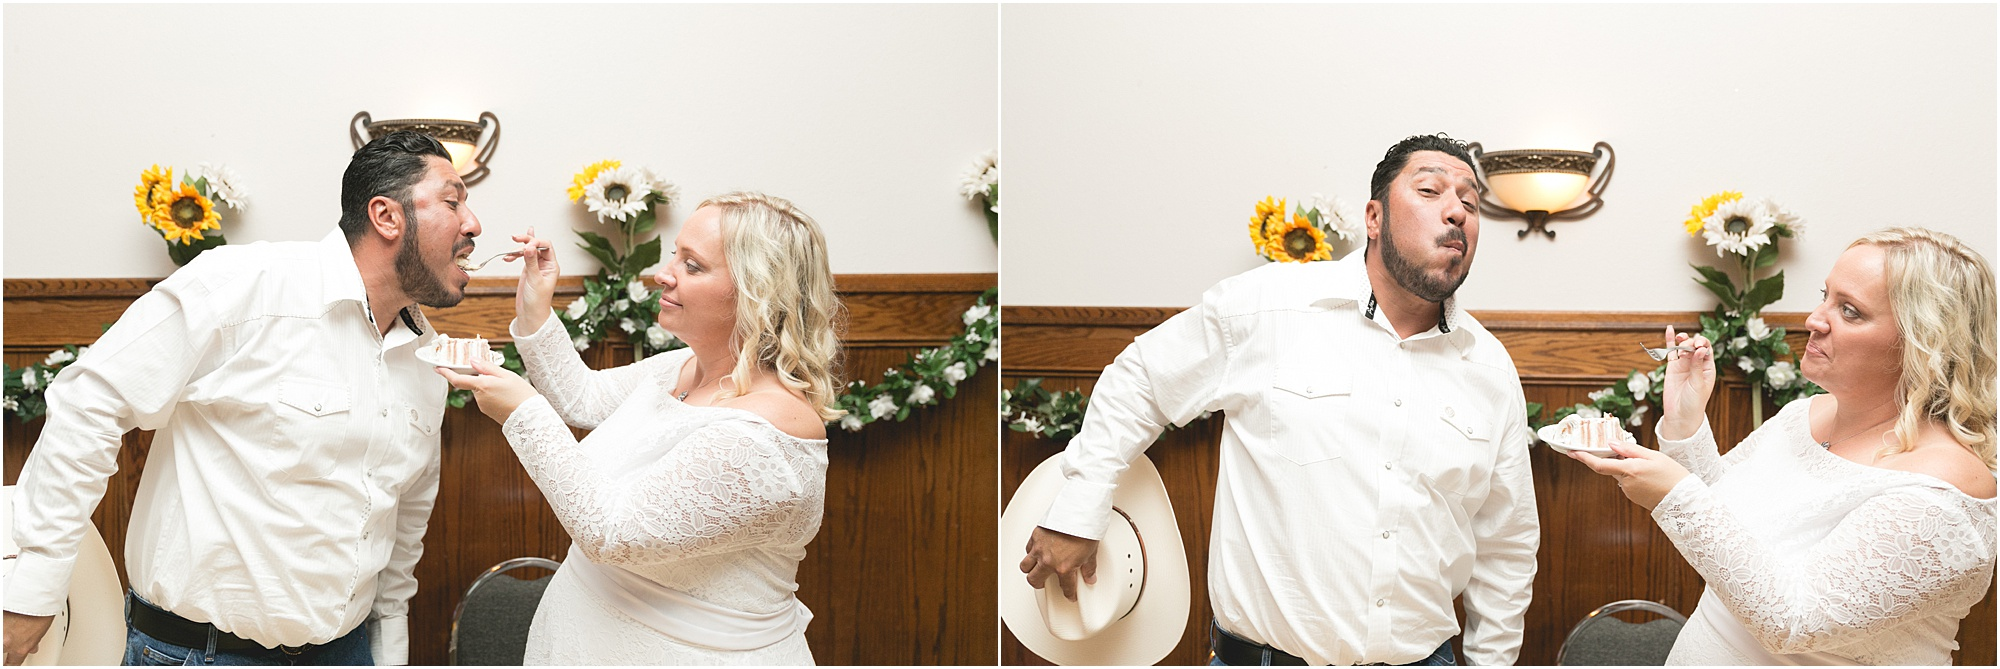 Manny and Michelle Wedding Stomps 33.jpg